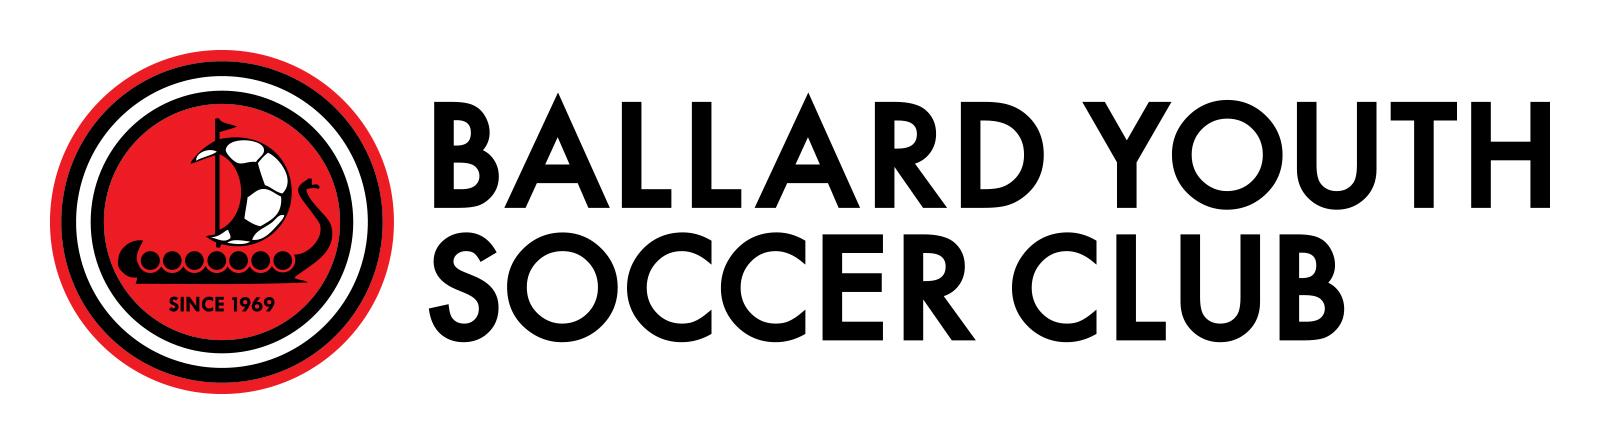 Ballard Youth Soccer Club760 x 81